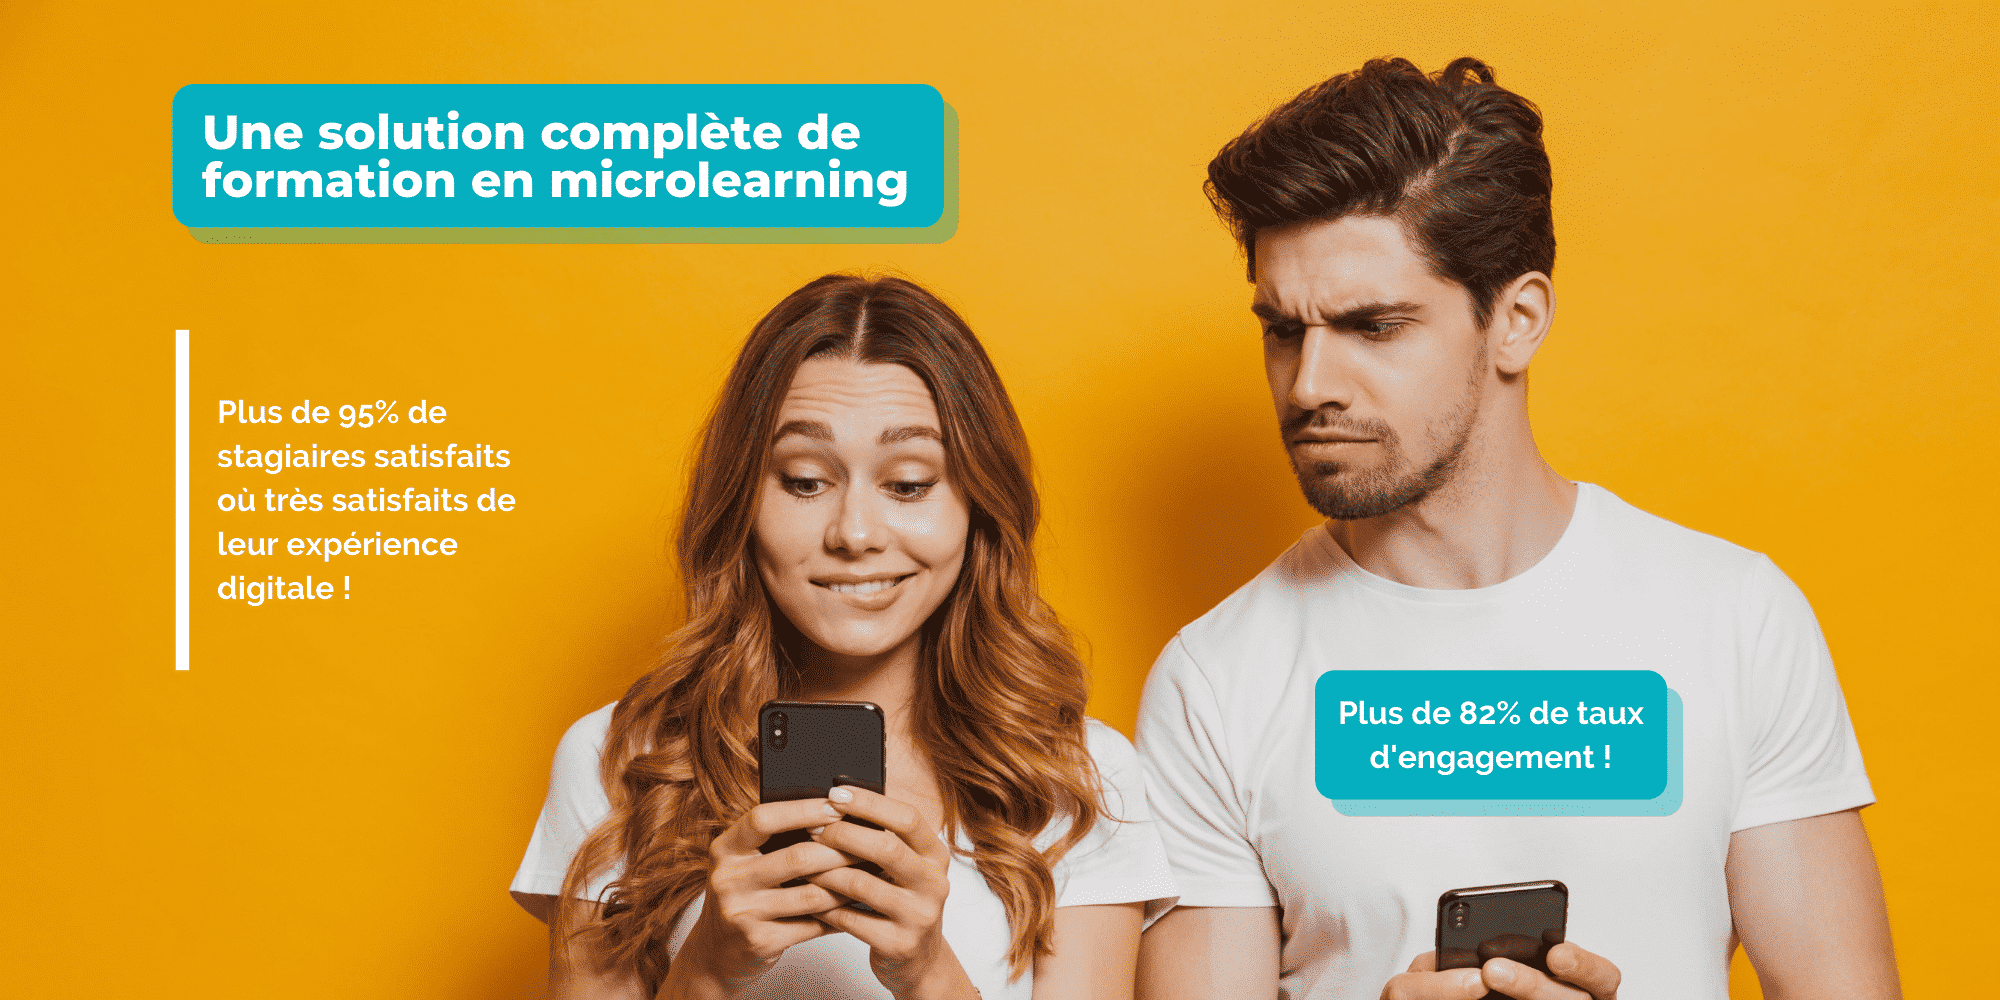 Formation microlearning